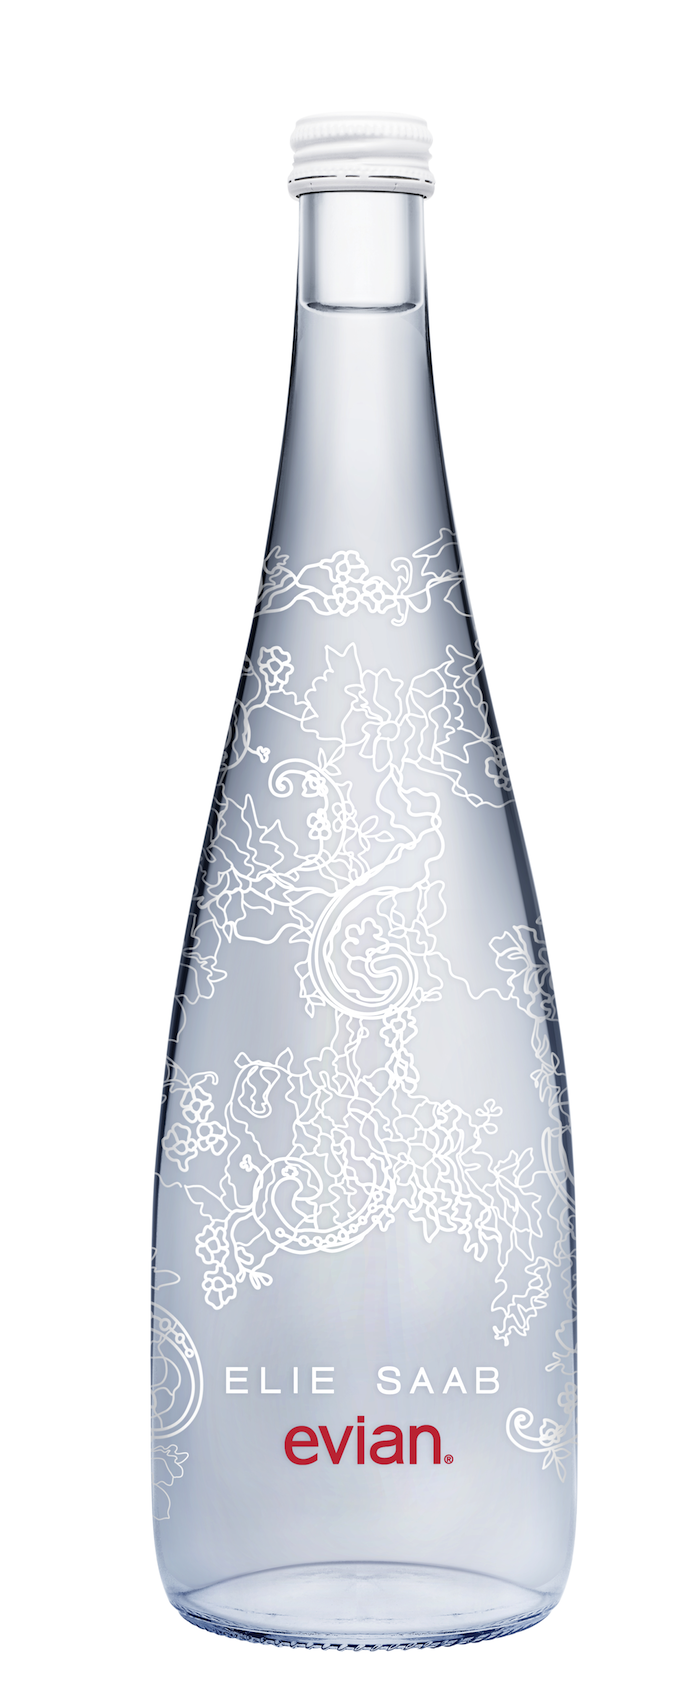 Elie-Saab_evian_limited-edition-bottle_01